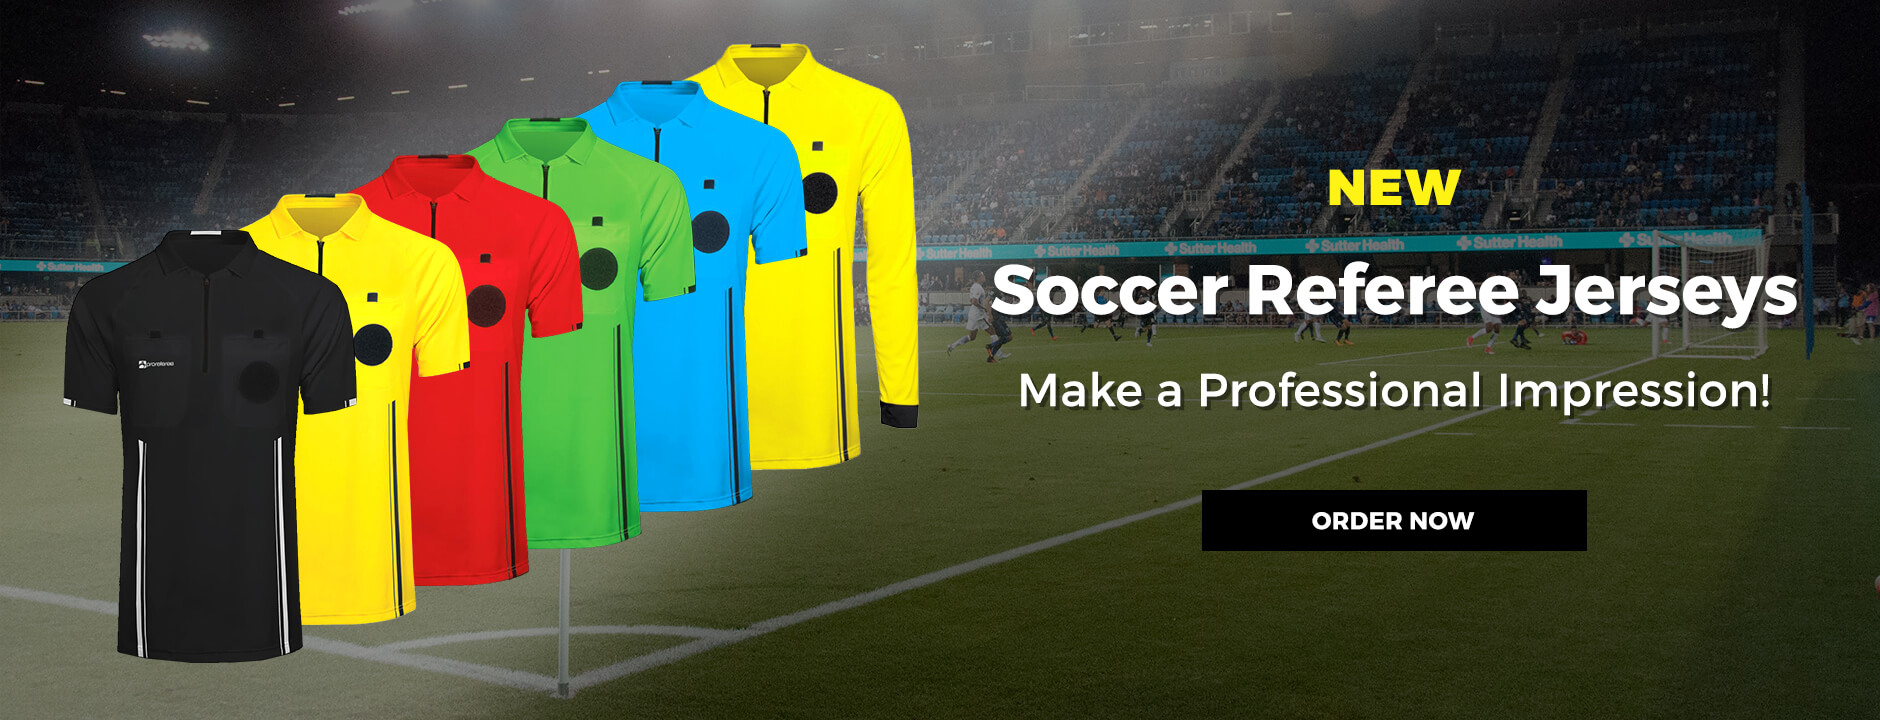 d80474ed3 ProReferee - Professional Soccer Referee Apparel   Equipment